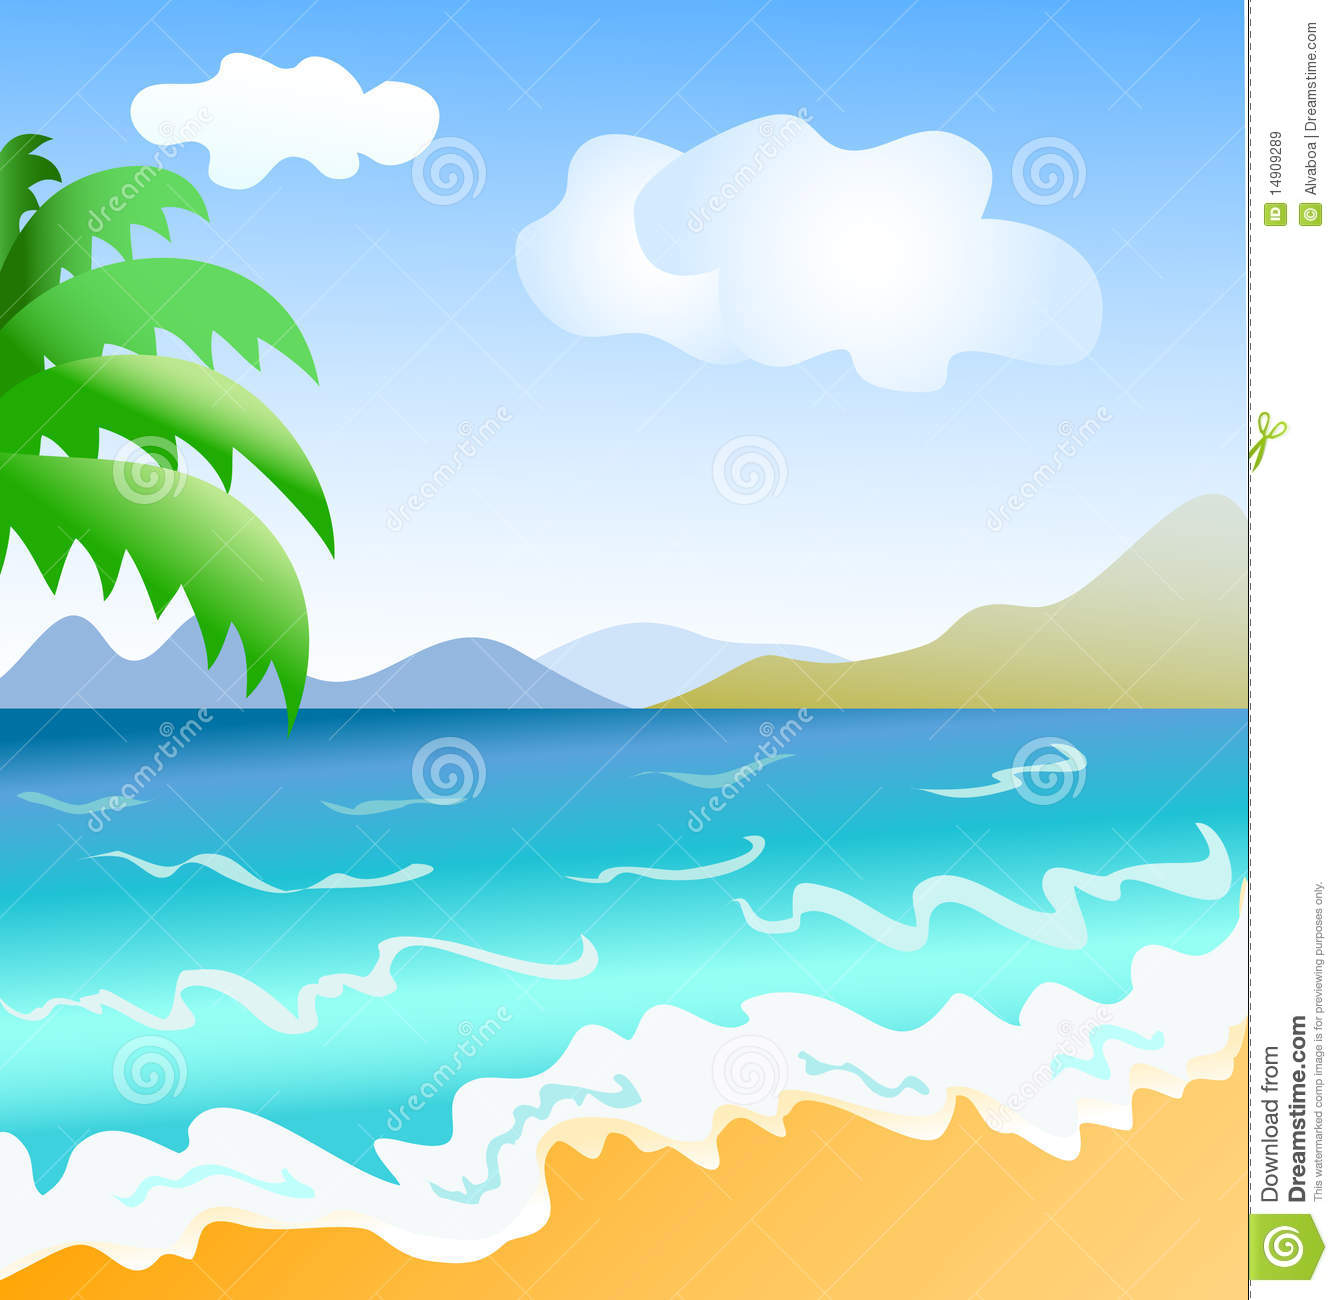 Shore clipart #17, Download drawings